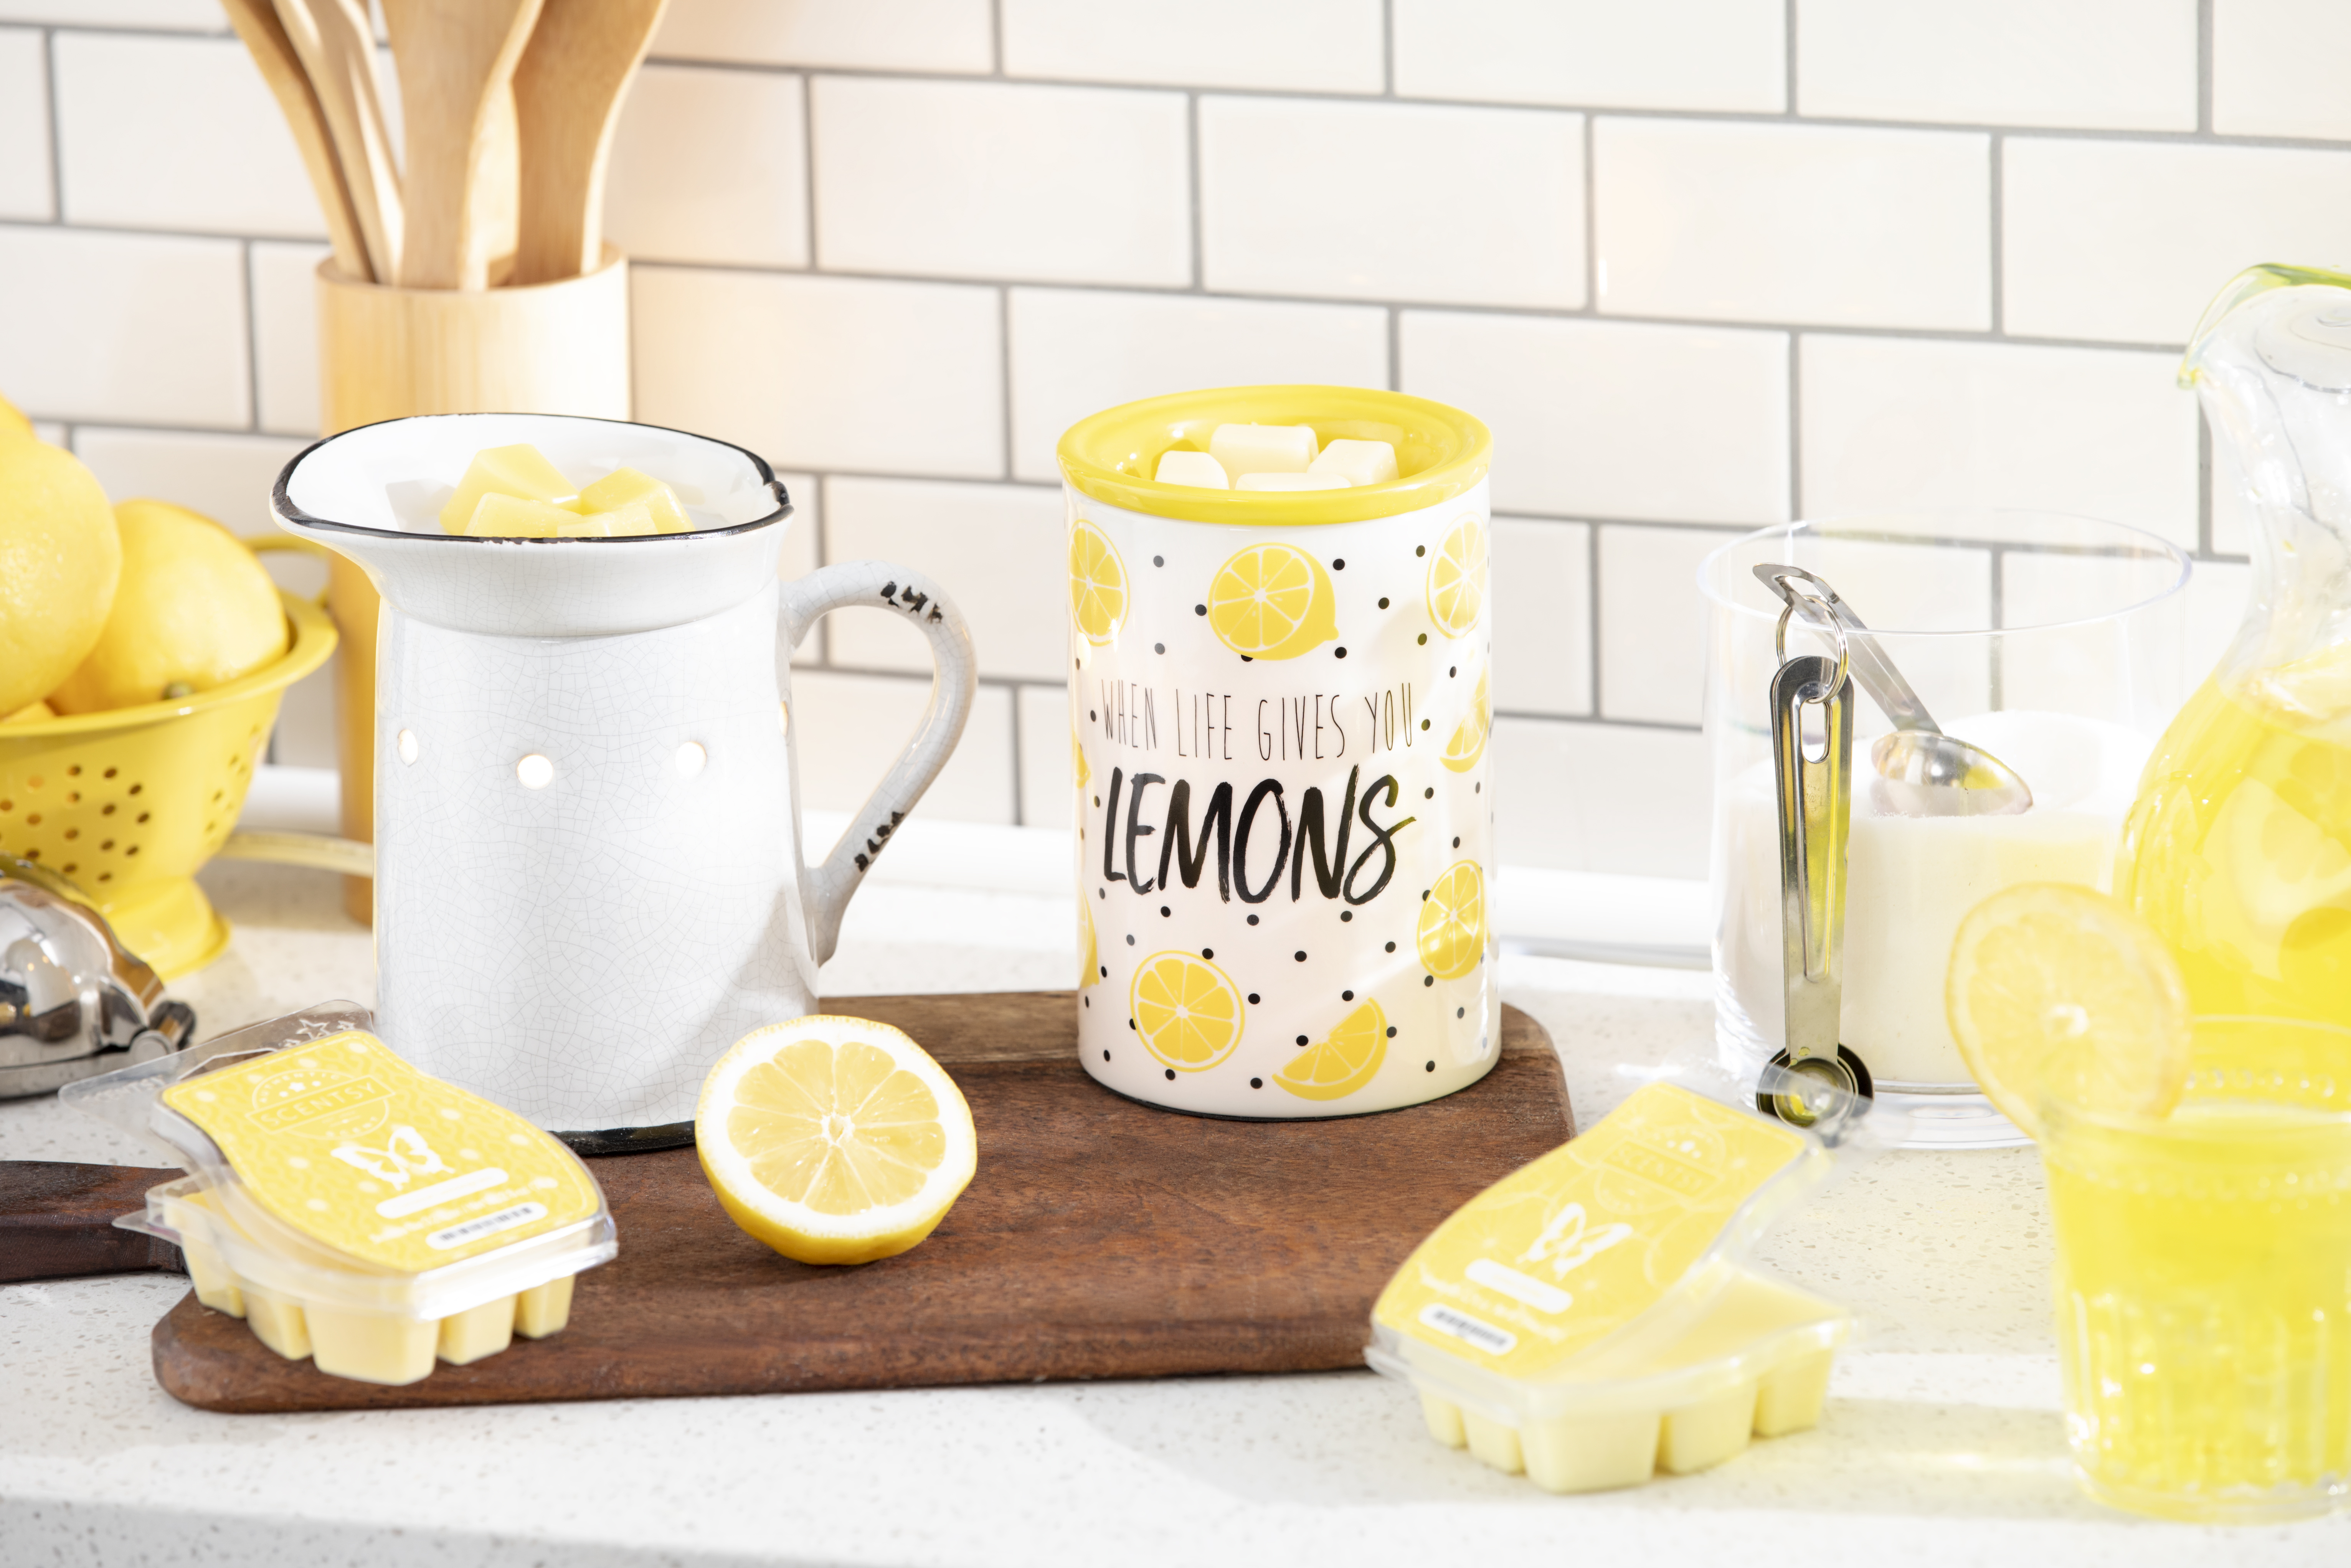 Lemon themed Scentsy warmers and wax.